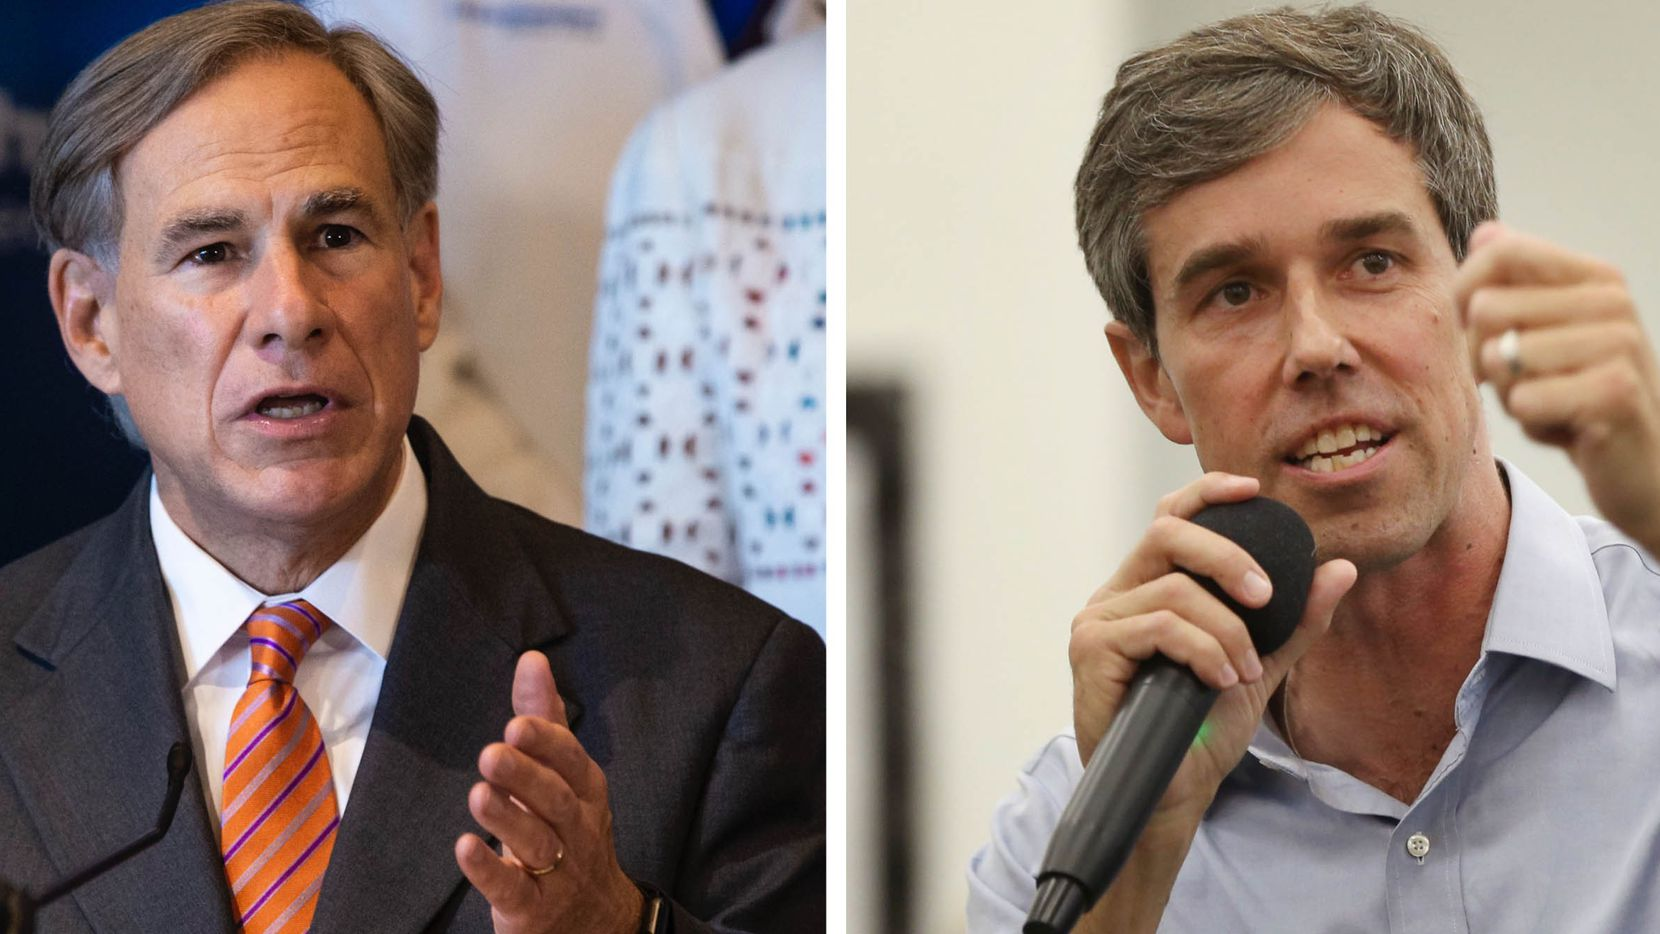 Democrat Beto O'Rourke is considering running for governor against two-time Republican incumbent Greg Abbott. O'Rourke, a former congressman from El Paso, was a 2020 presidential candidate and in 2018 he lost a Senate race to incumbent Republican Ted Cruz by 2.6 percentage points. (Photos by Lynda M. Gonzalez, left, and Rose Baca, right)